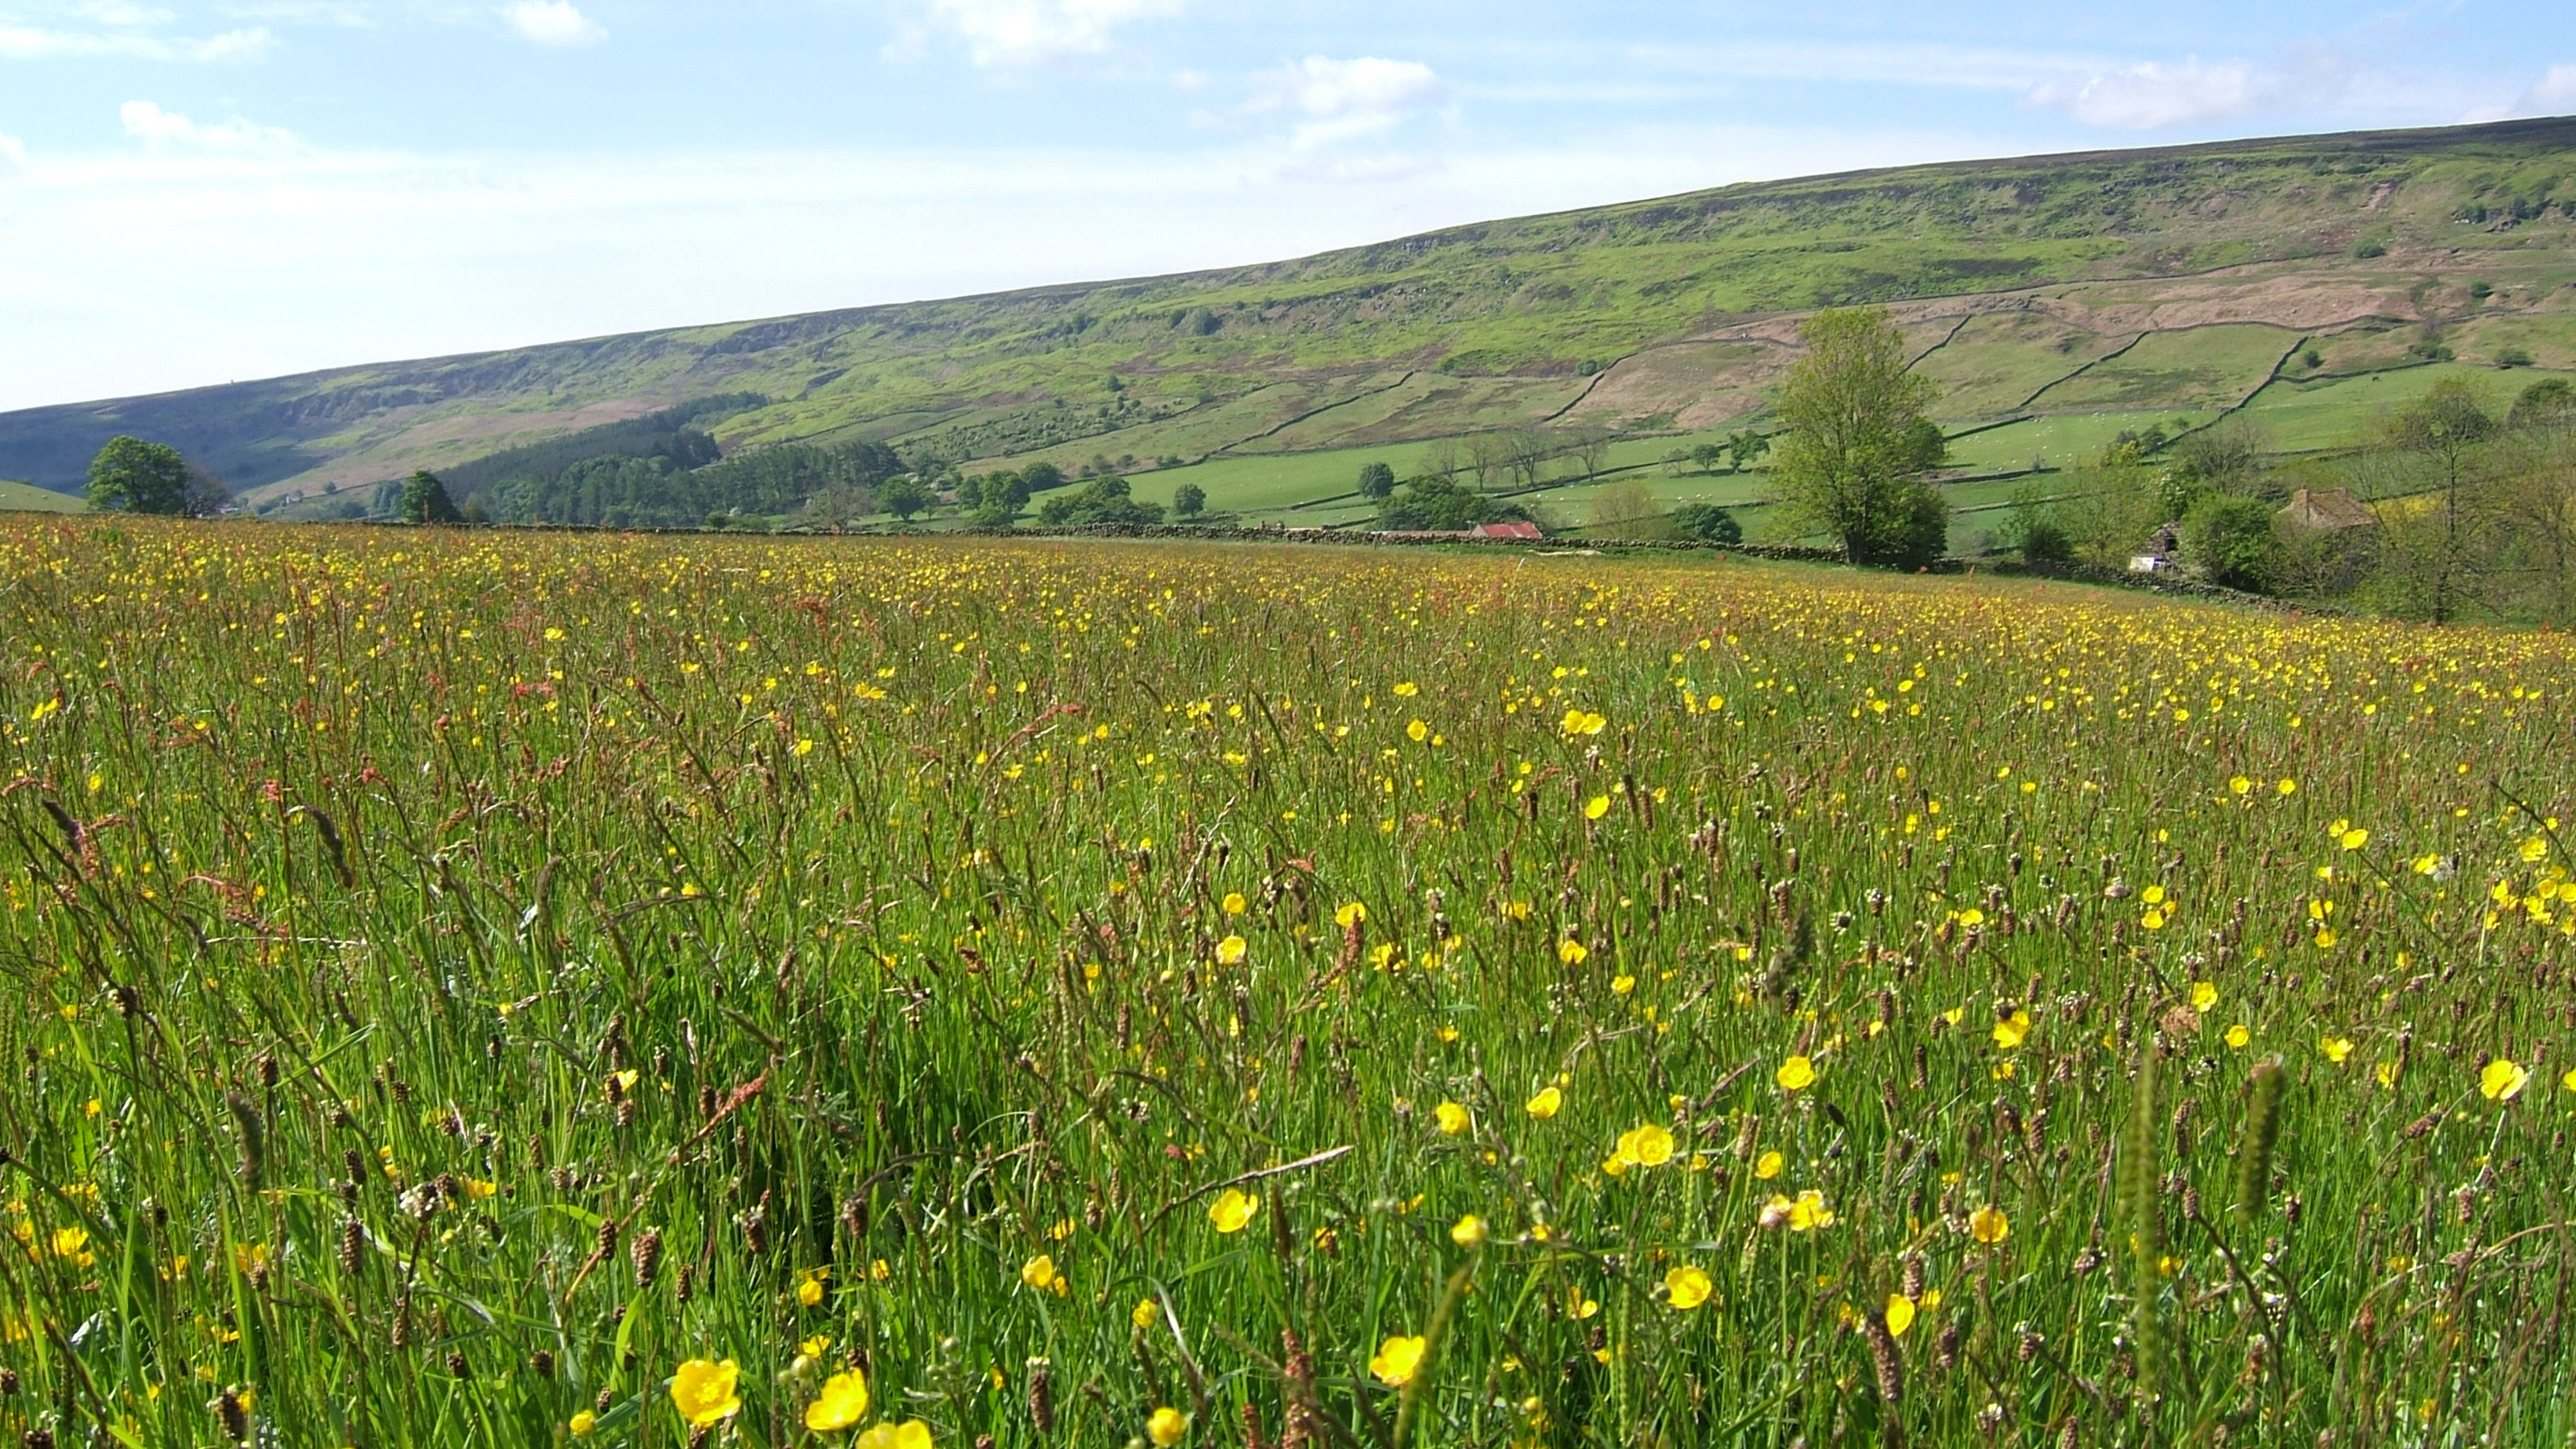 Rosedale s mini meadow part 1 the official blog for for The meado